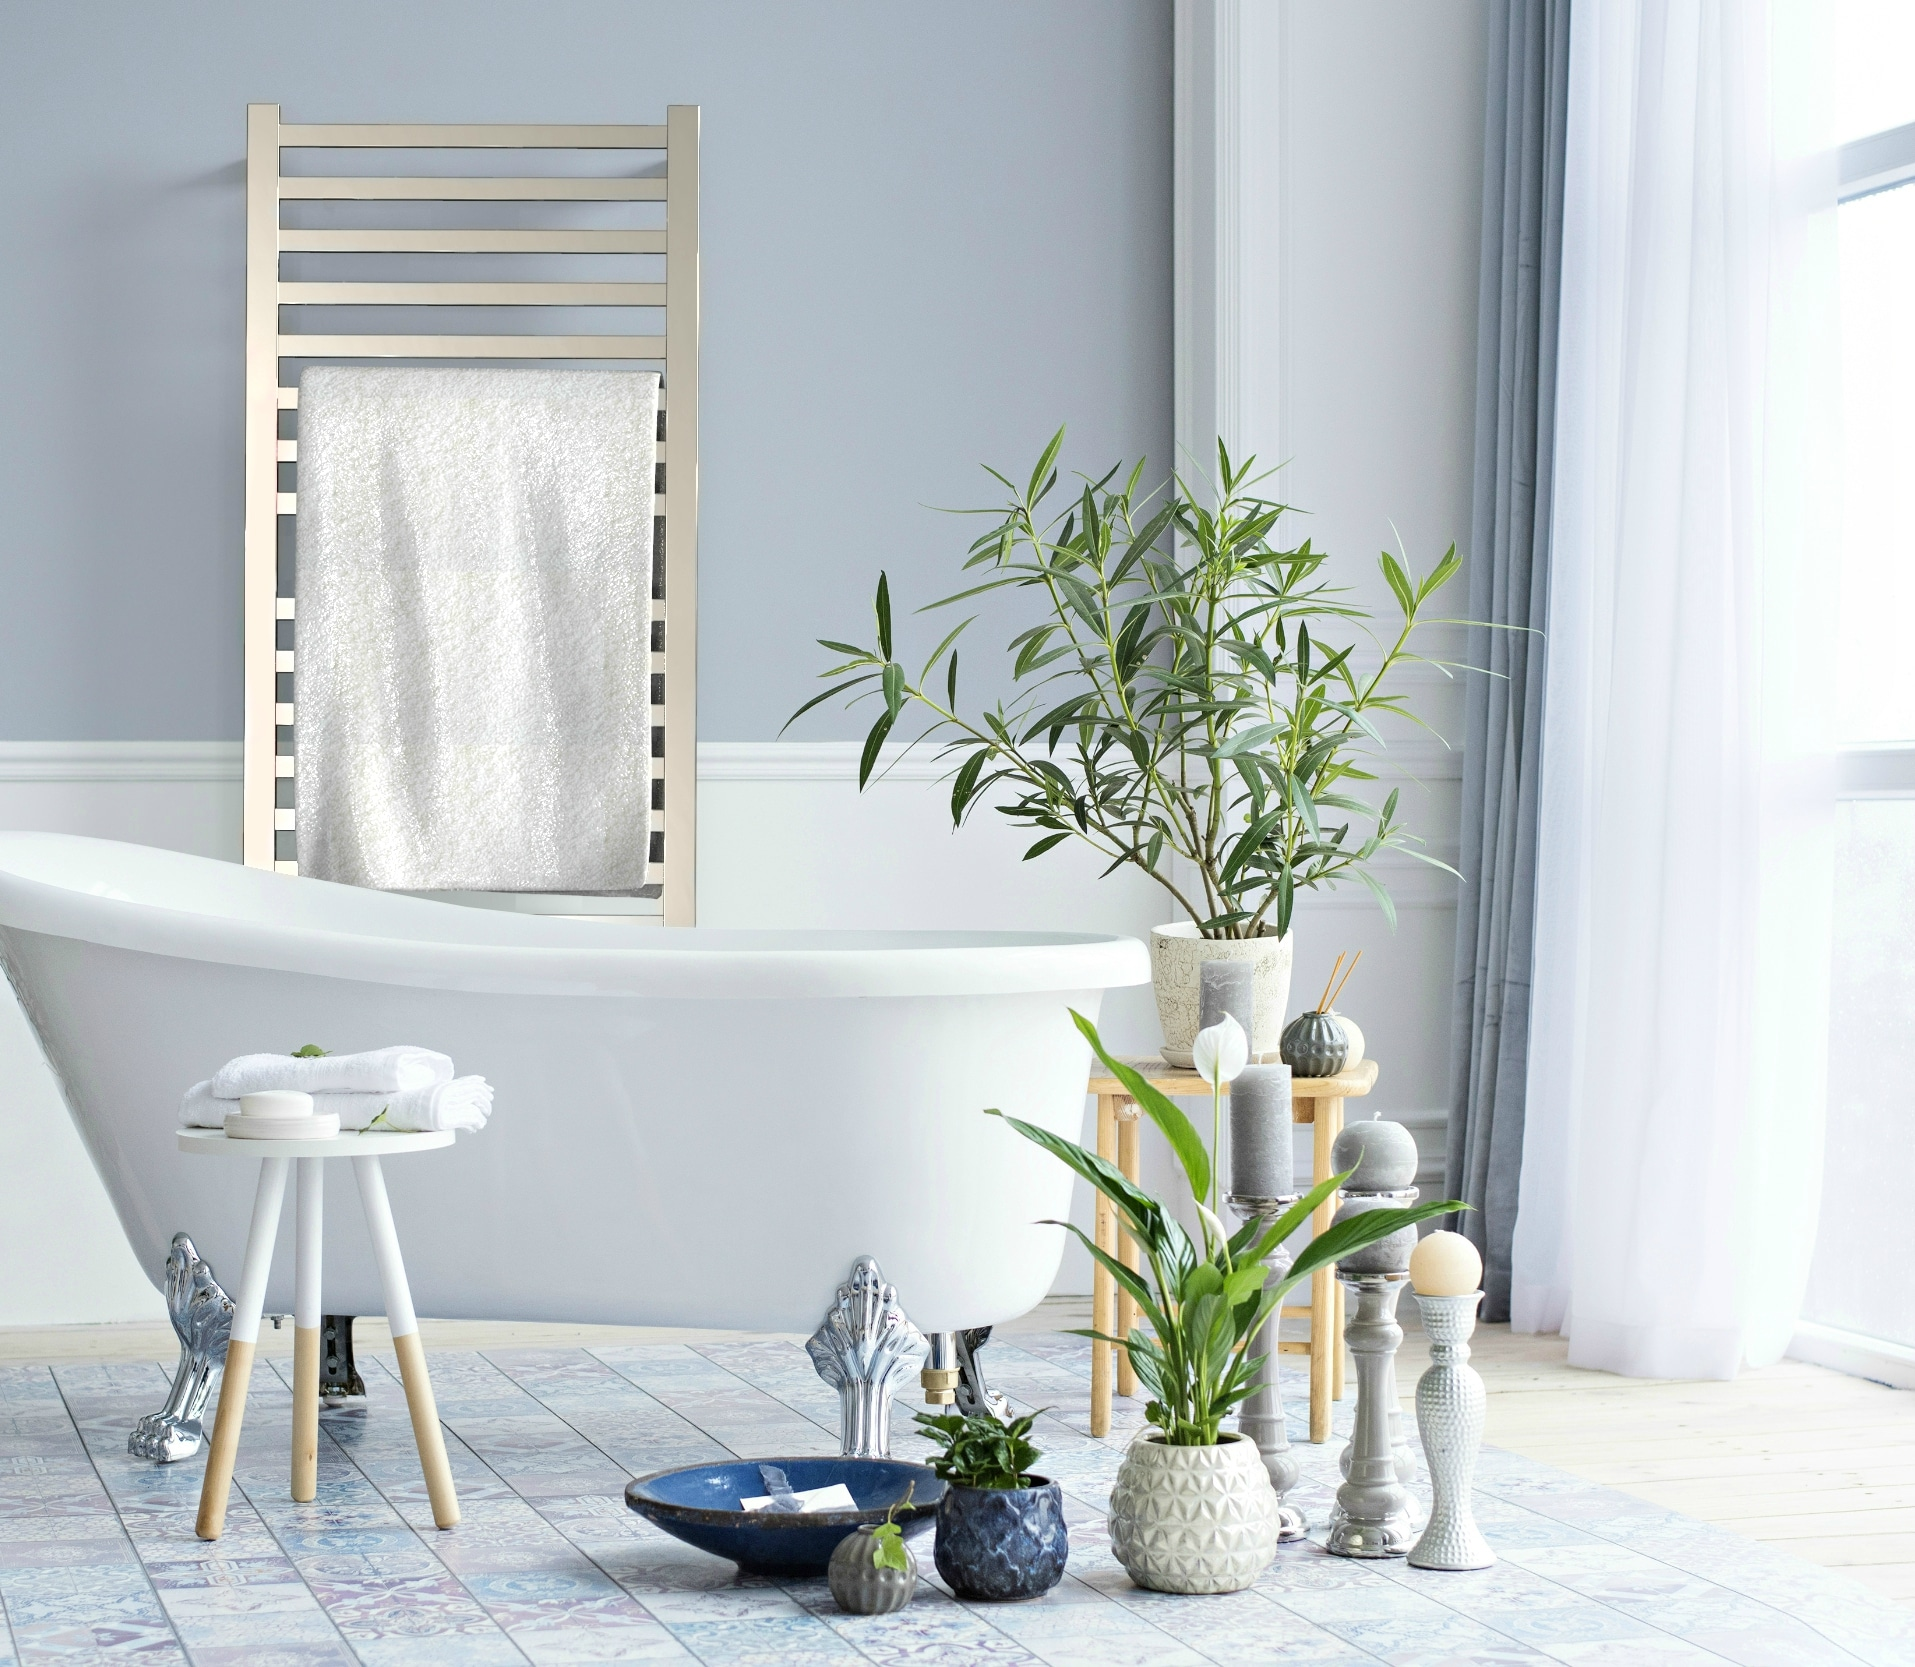 Amba Quadro Heated Towel Rack - champagne. Have ever thought about purchasing a Heated Towel Rack for your home? Freestanding heated towel racks units only need to be plugged in, come in a variety of space-saving models, and are very affordable. Adding a heated towel rack can save from having to launder towels as often and the racks can also be used to dry clothing.